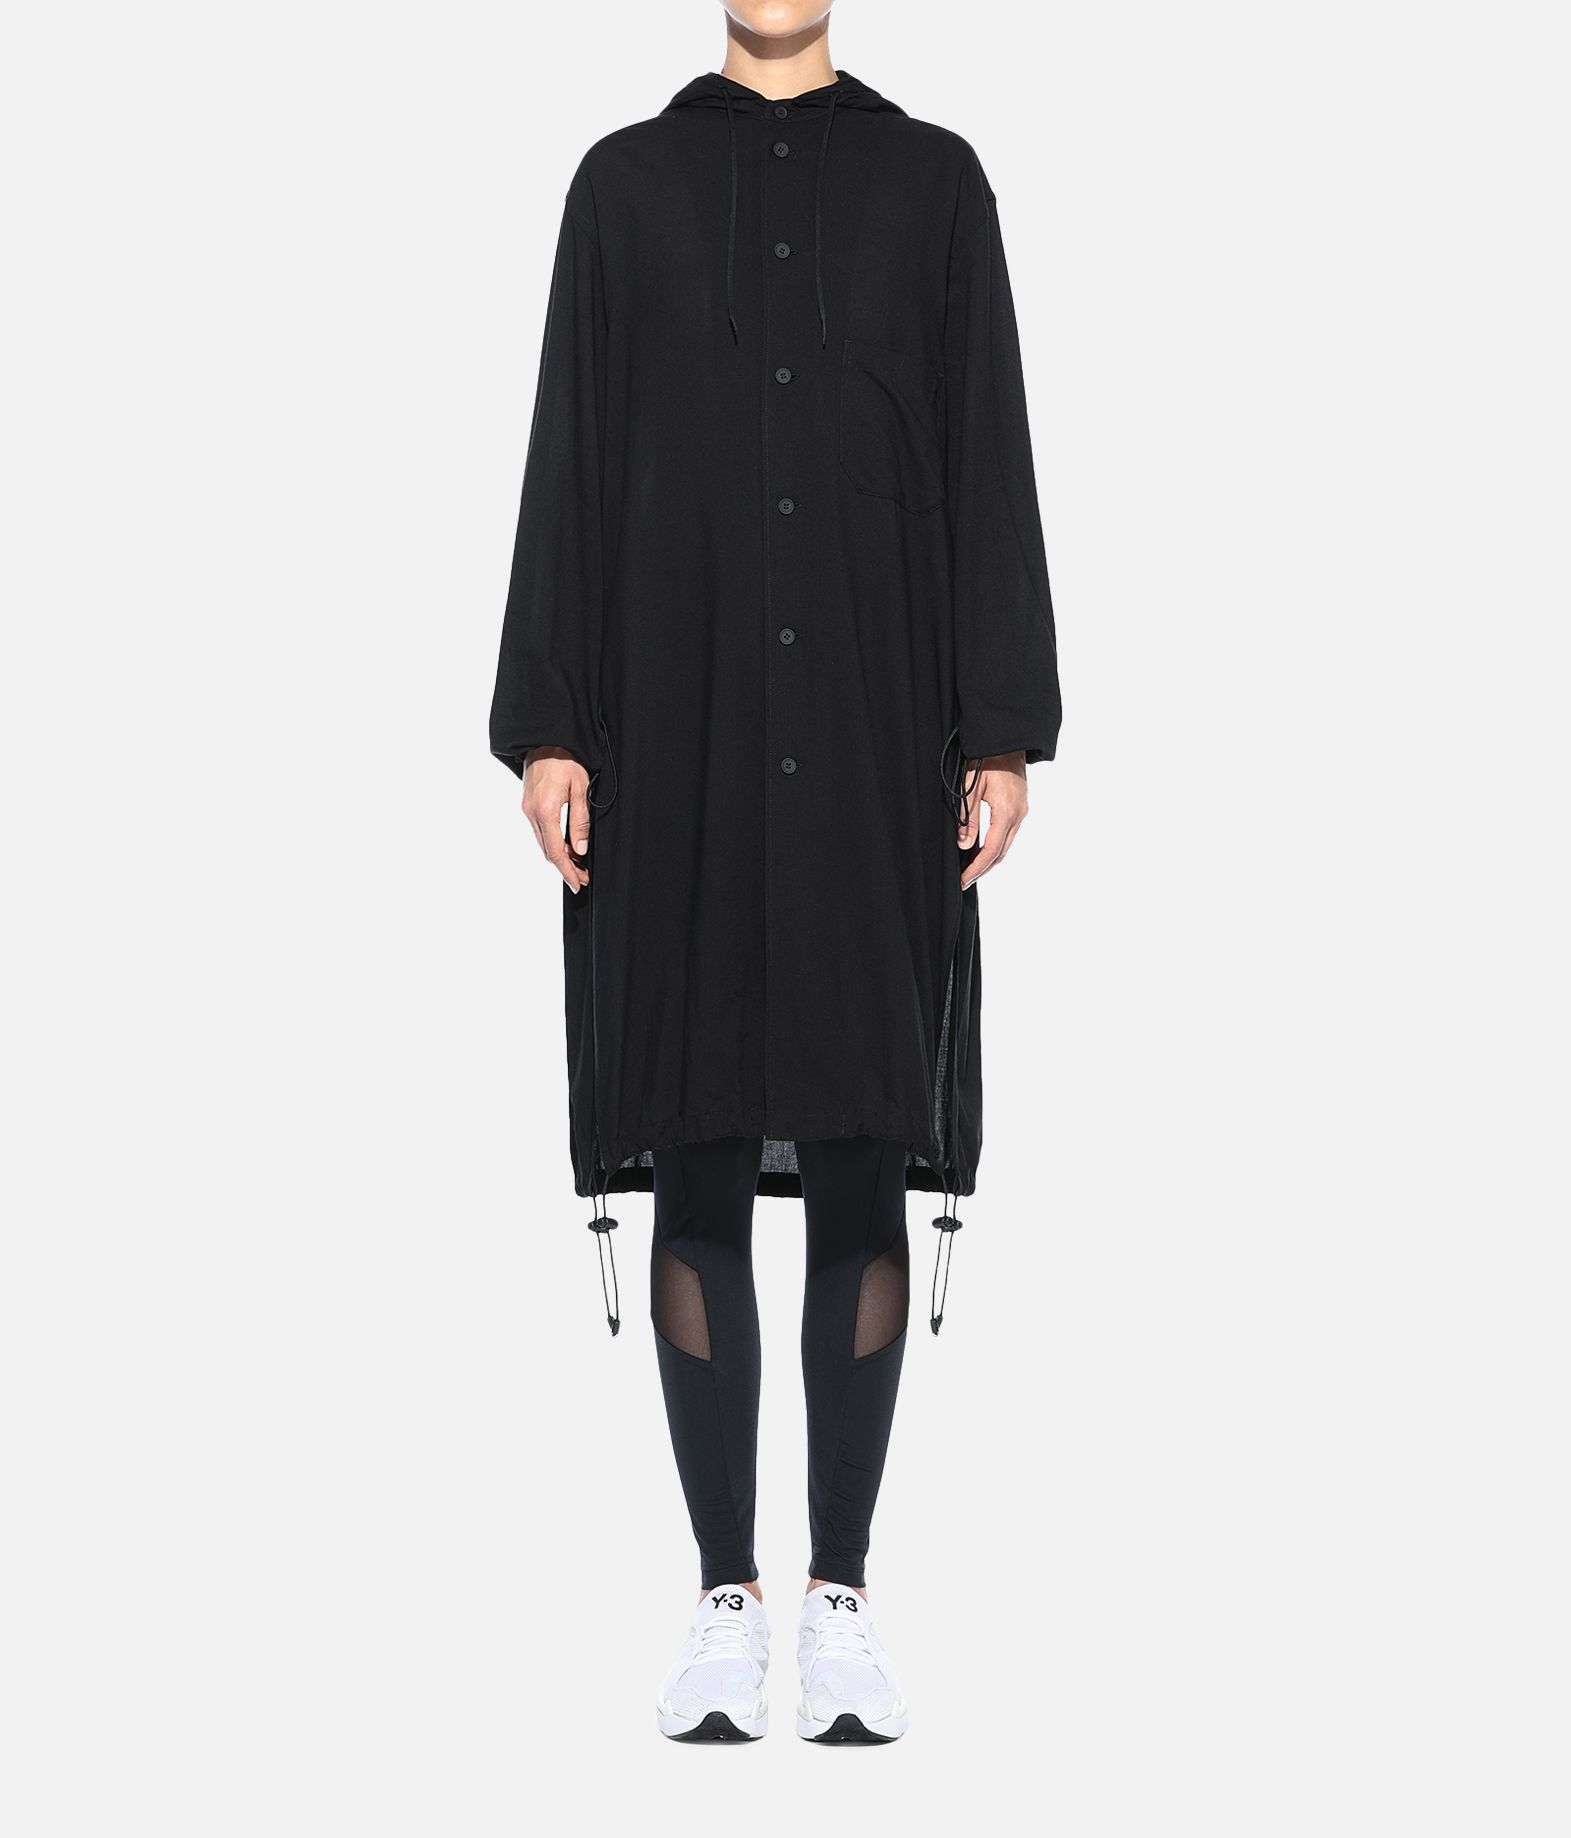 Y-3 Y-3 Hooded Long Shirt Long sleeve shirt Woman r